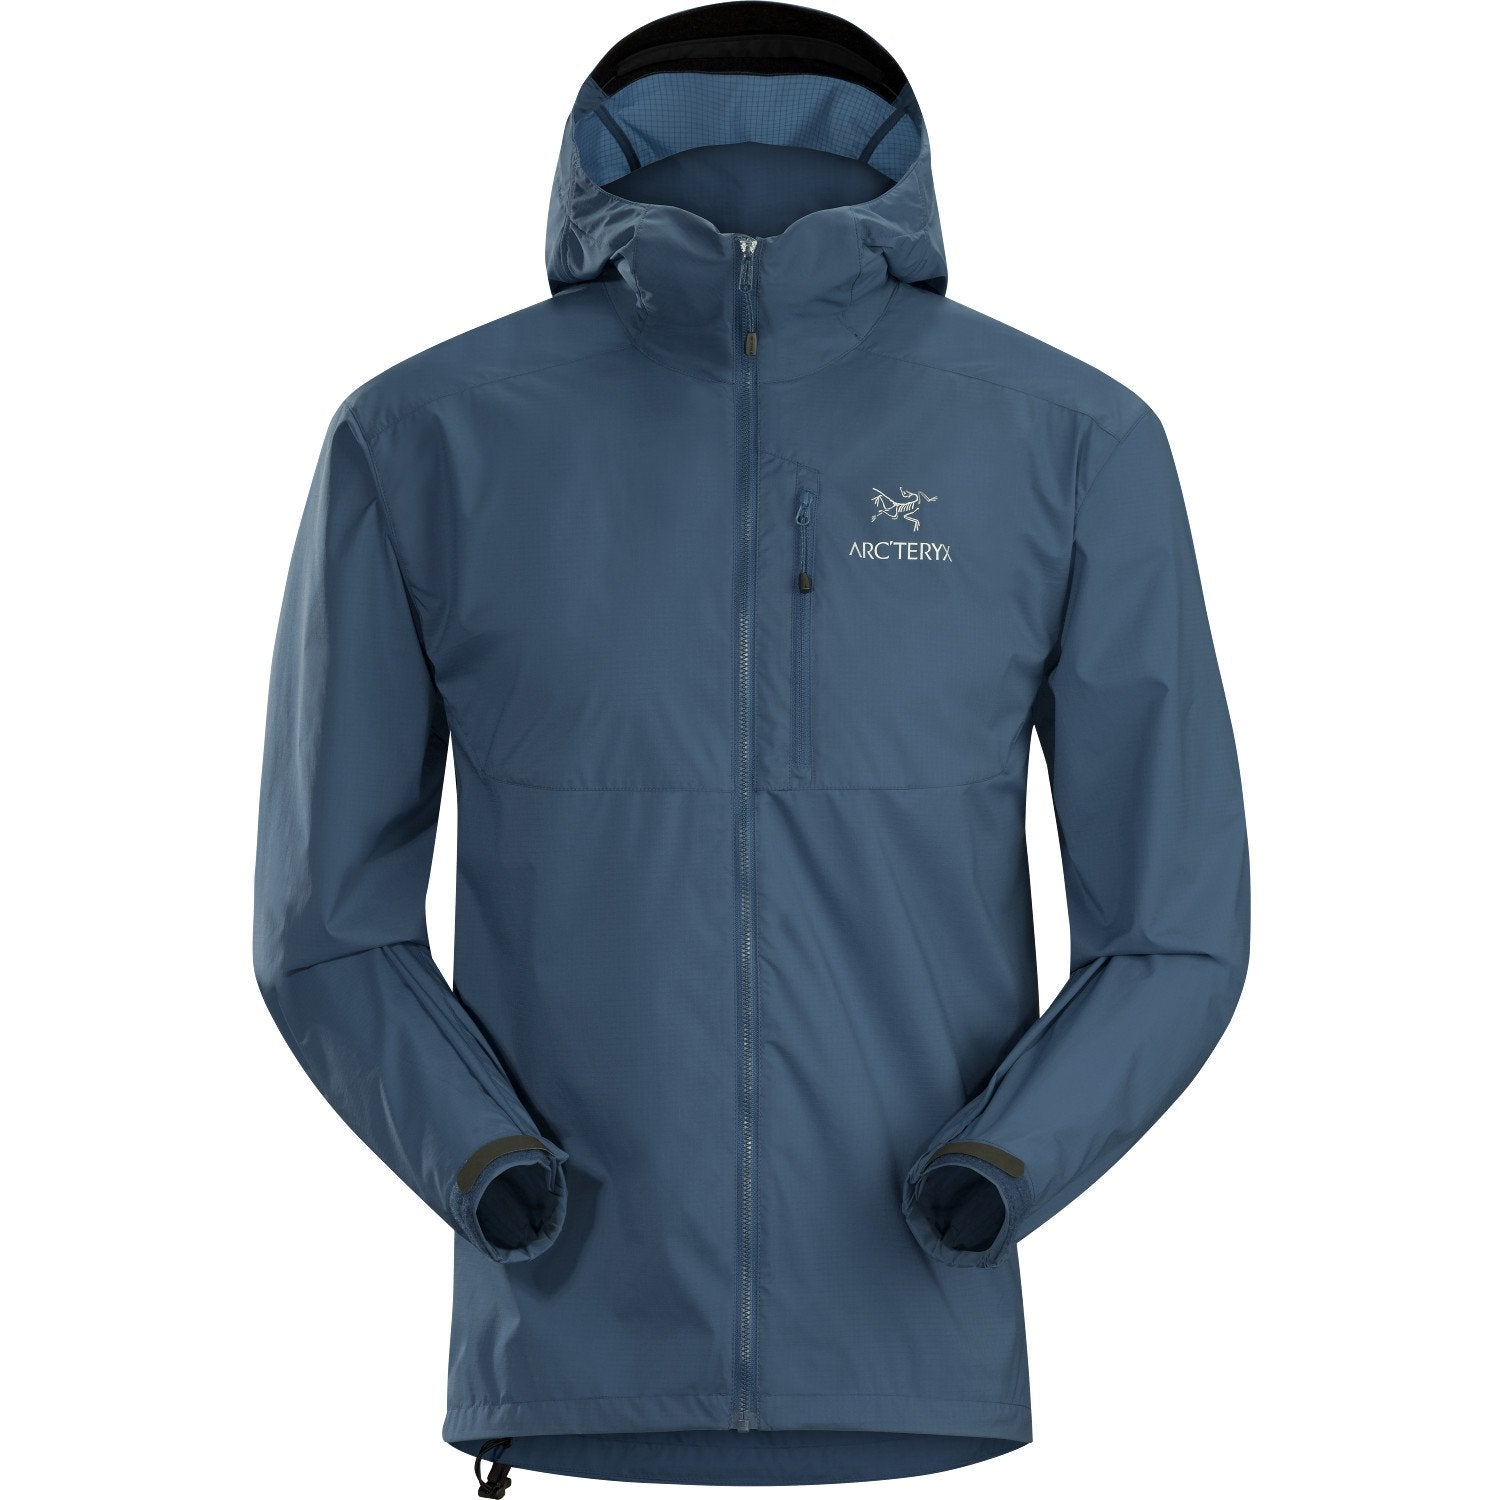 ArcTeryx Squamish Hoody in Navy